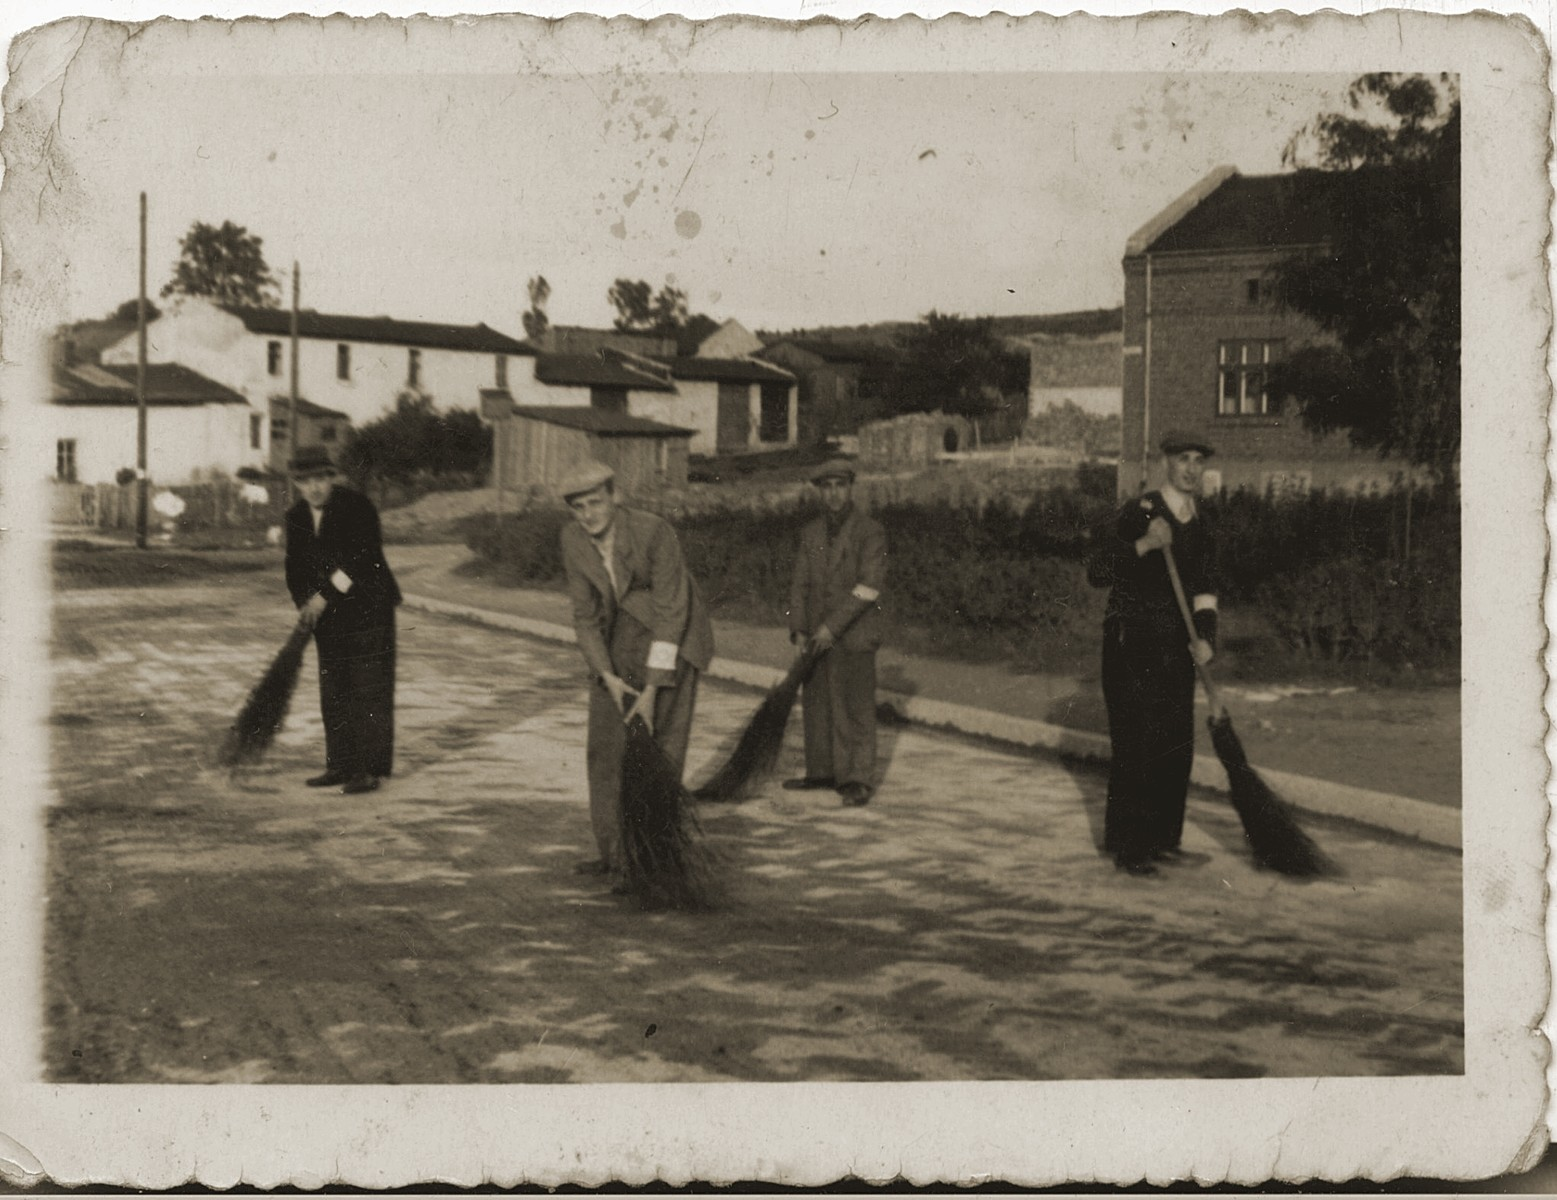 Jews wearing armbands are forced to sweep a street.